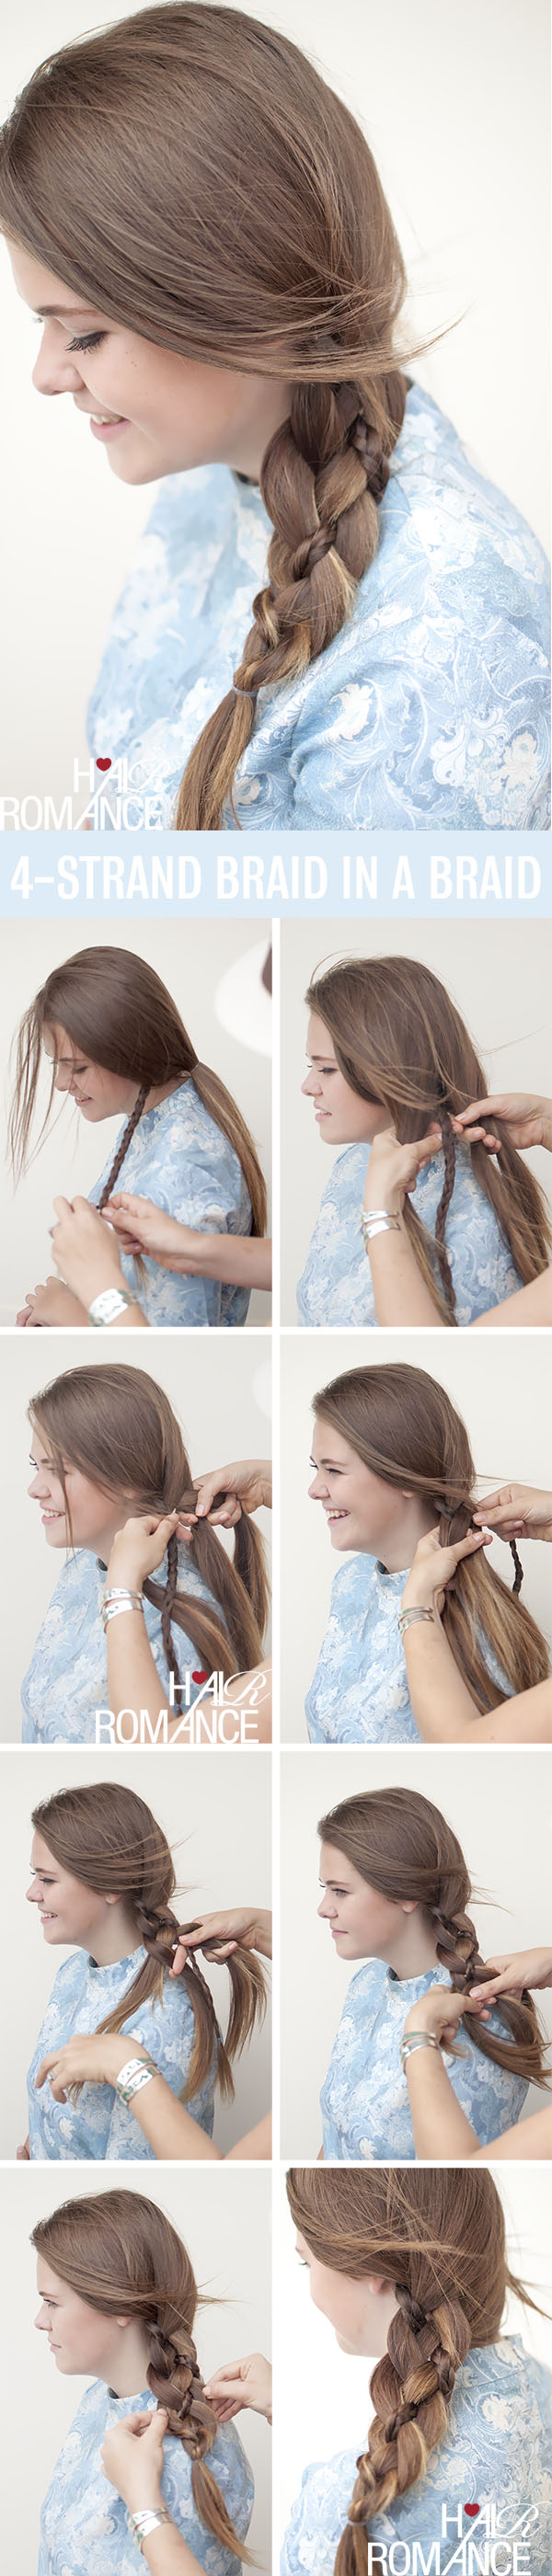 Hair Romance hairstyle tutorial - 4 strand braid in a braid